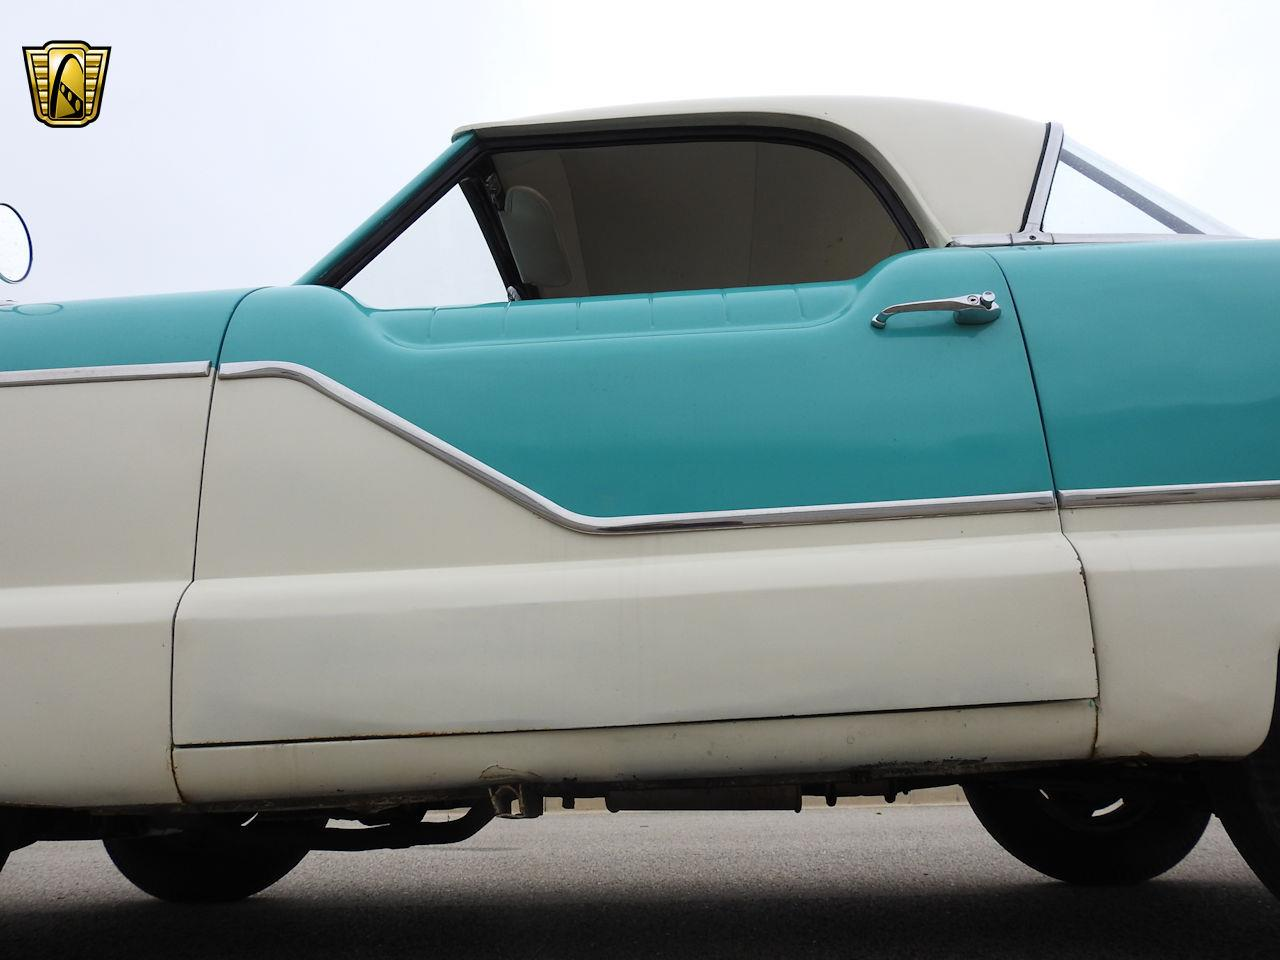 Large Picture of '57 Nash Metropolitan located in Wisconsin - $12,995.00 Offered by Gateway Classic Cars - Milwaukee - OOM4